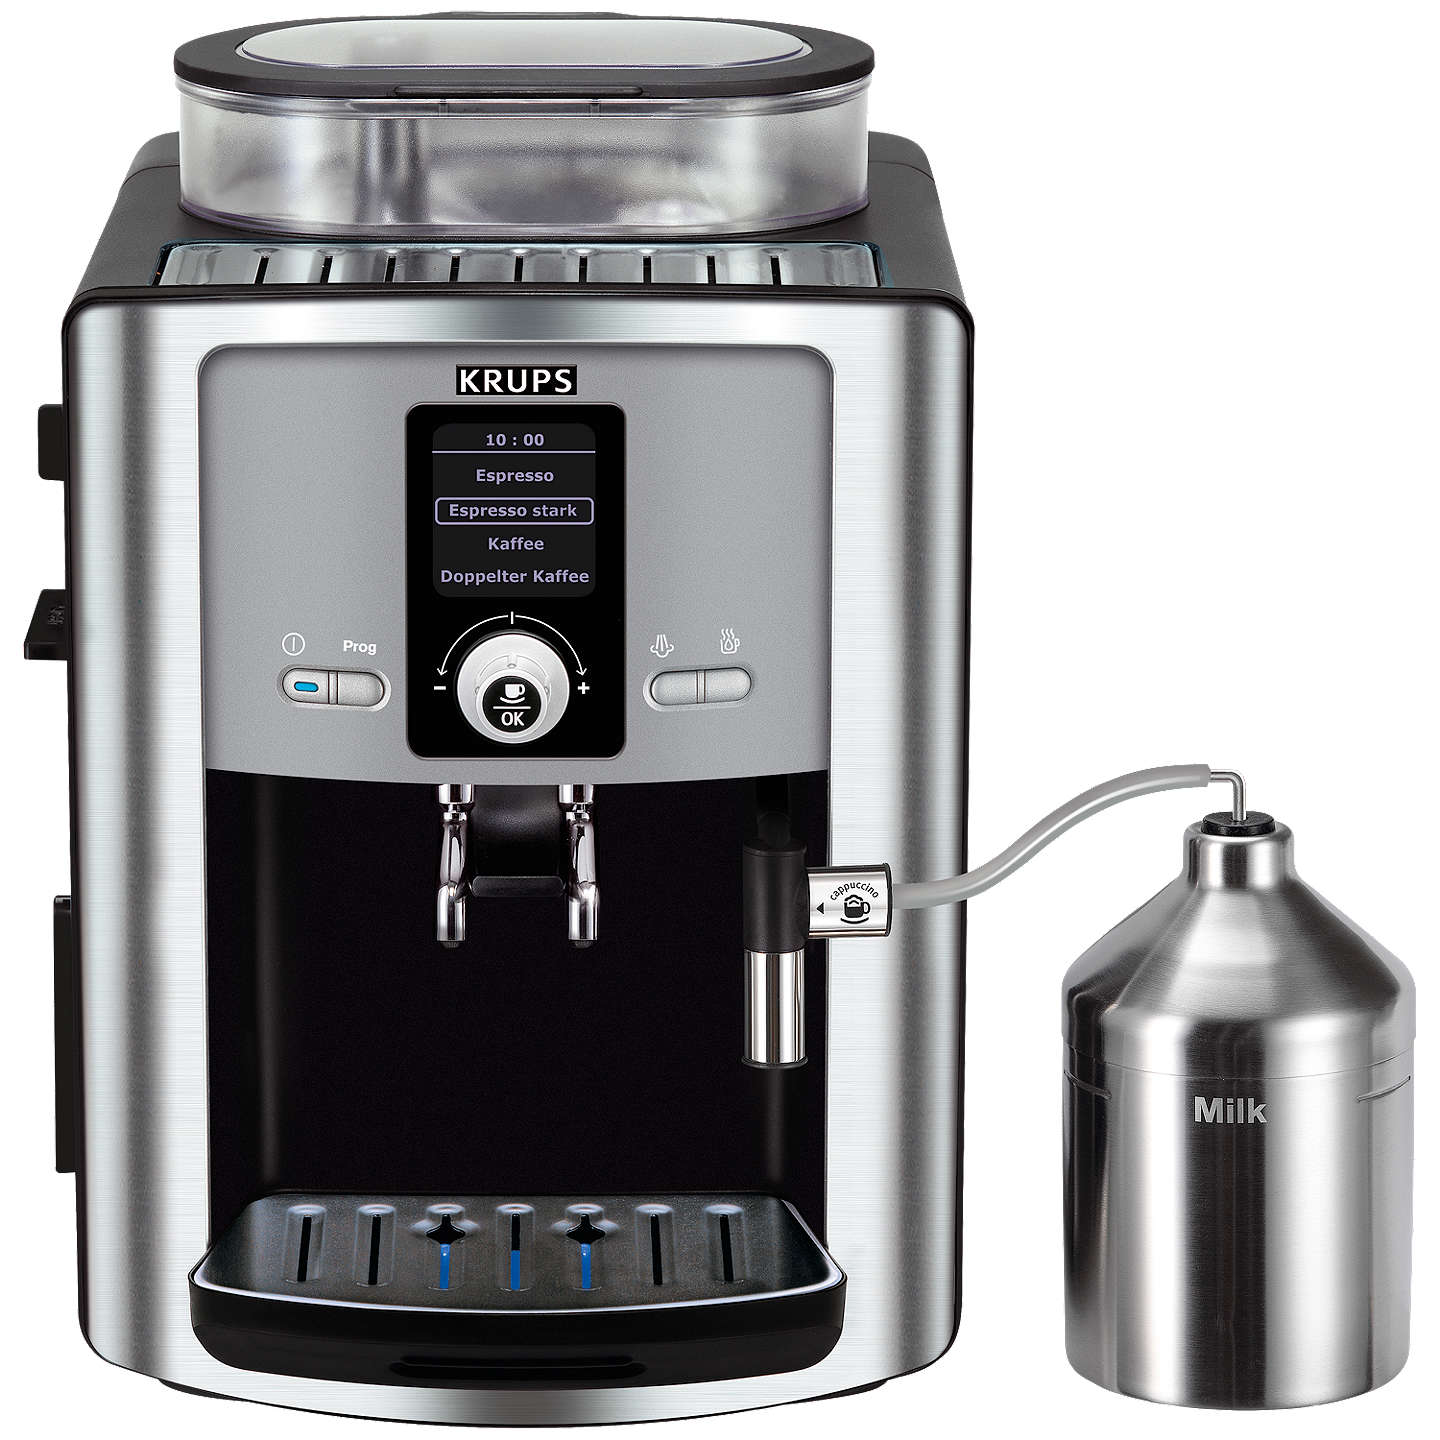 Buykrups Ea8050 Espresseria Bean To Cup Coffee Machine, Stainless Steel Online At